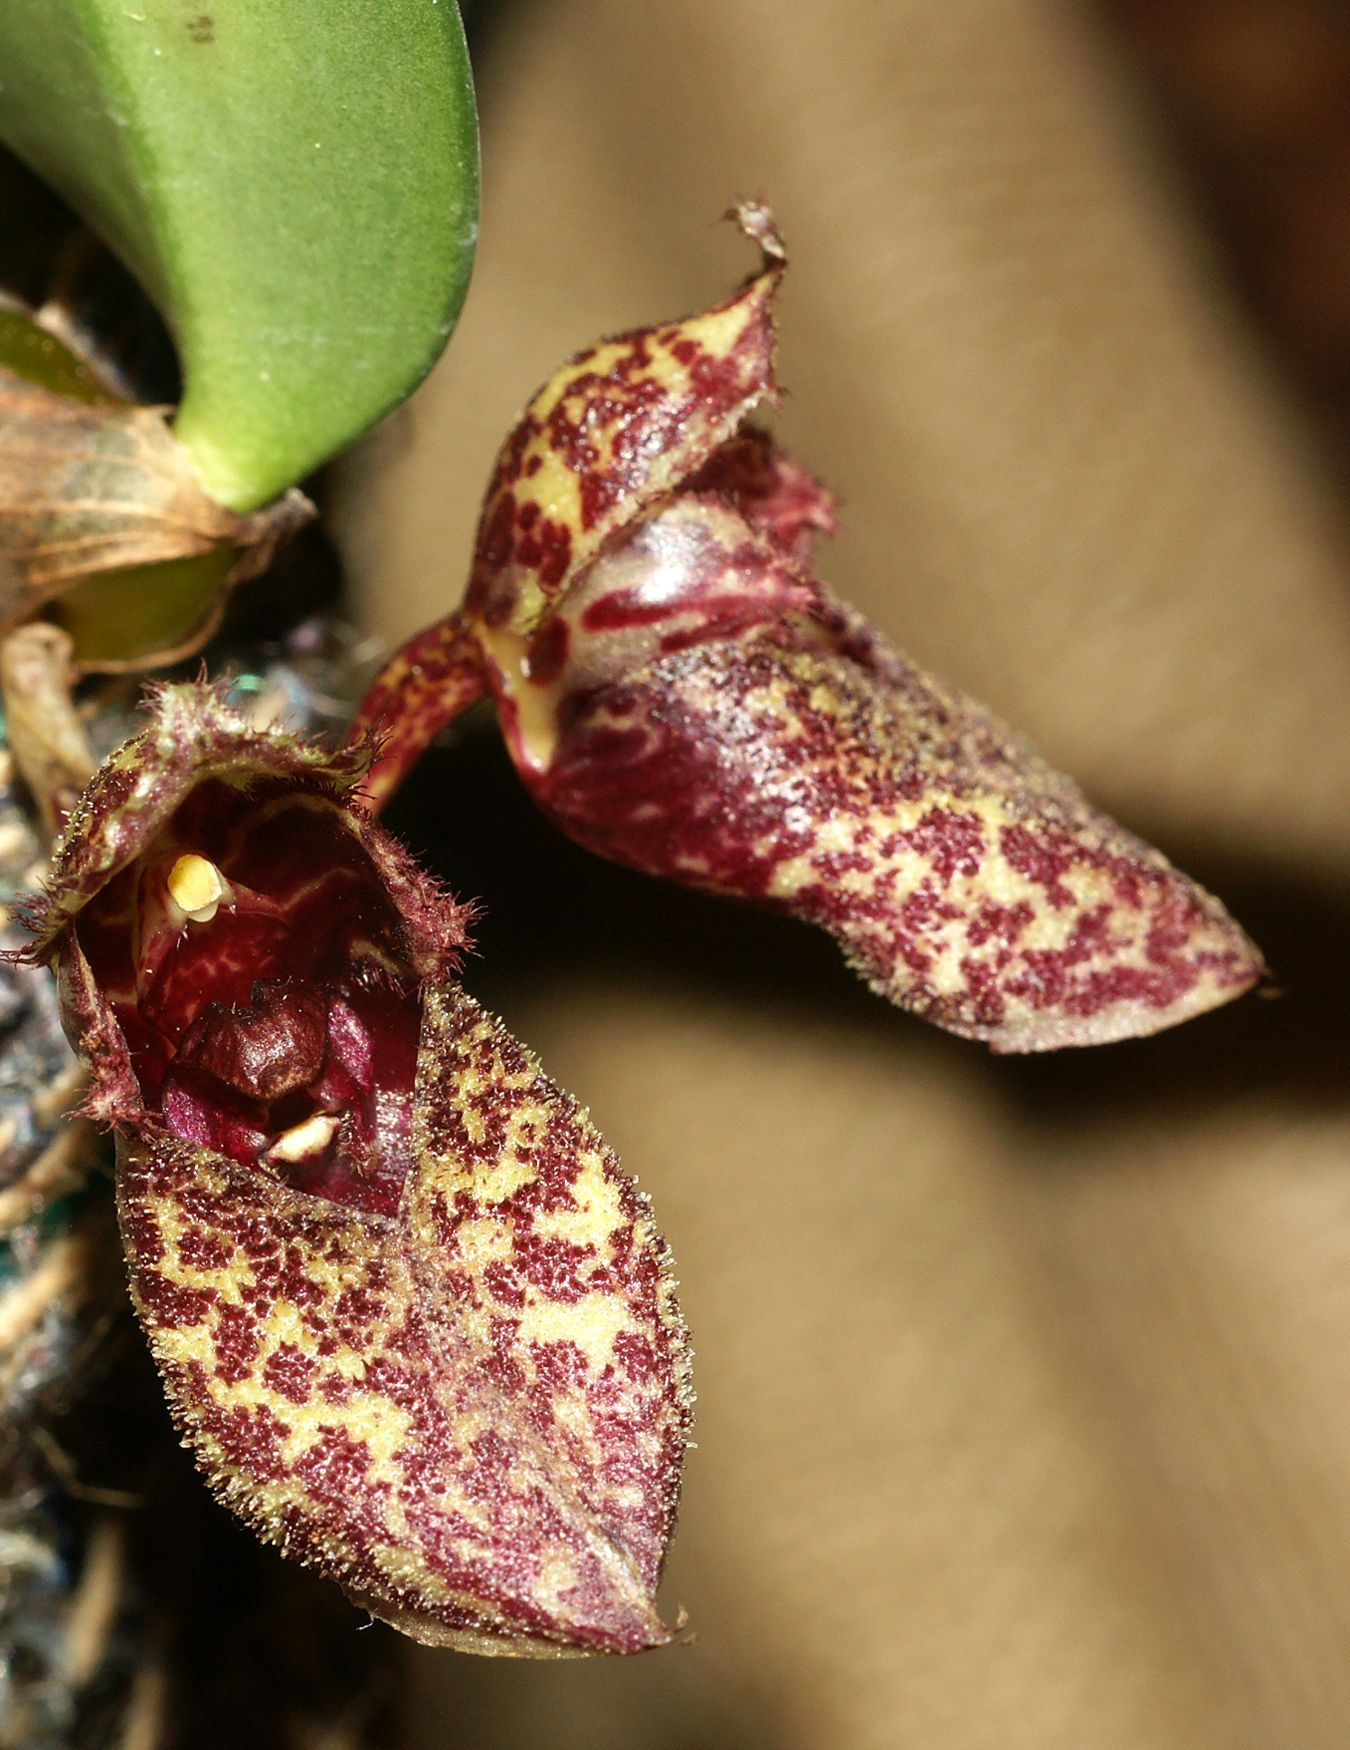 'Orchid-Mimicry' - Flowers of Bulbophyllum frostii - Not some fancy-footware - Exhibition: 15. European Orchid Congress - Dresden 2009; Photo by Orchi